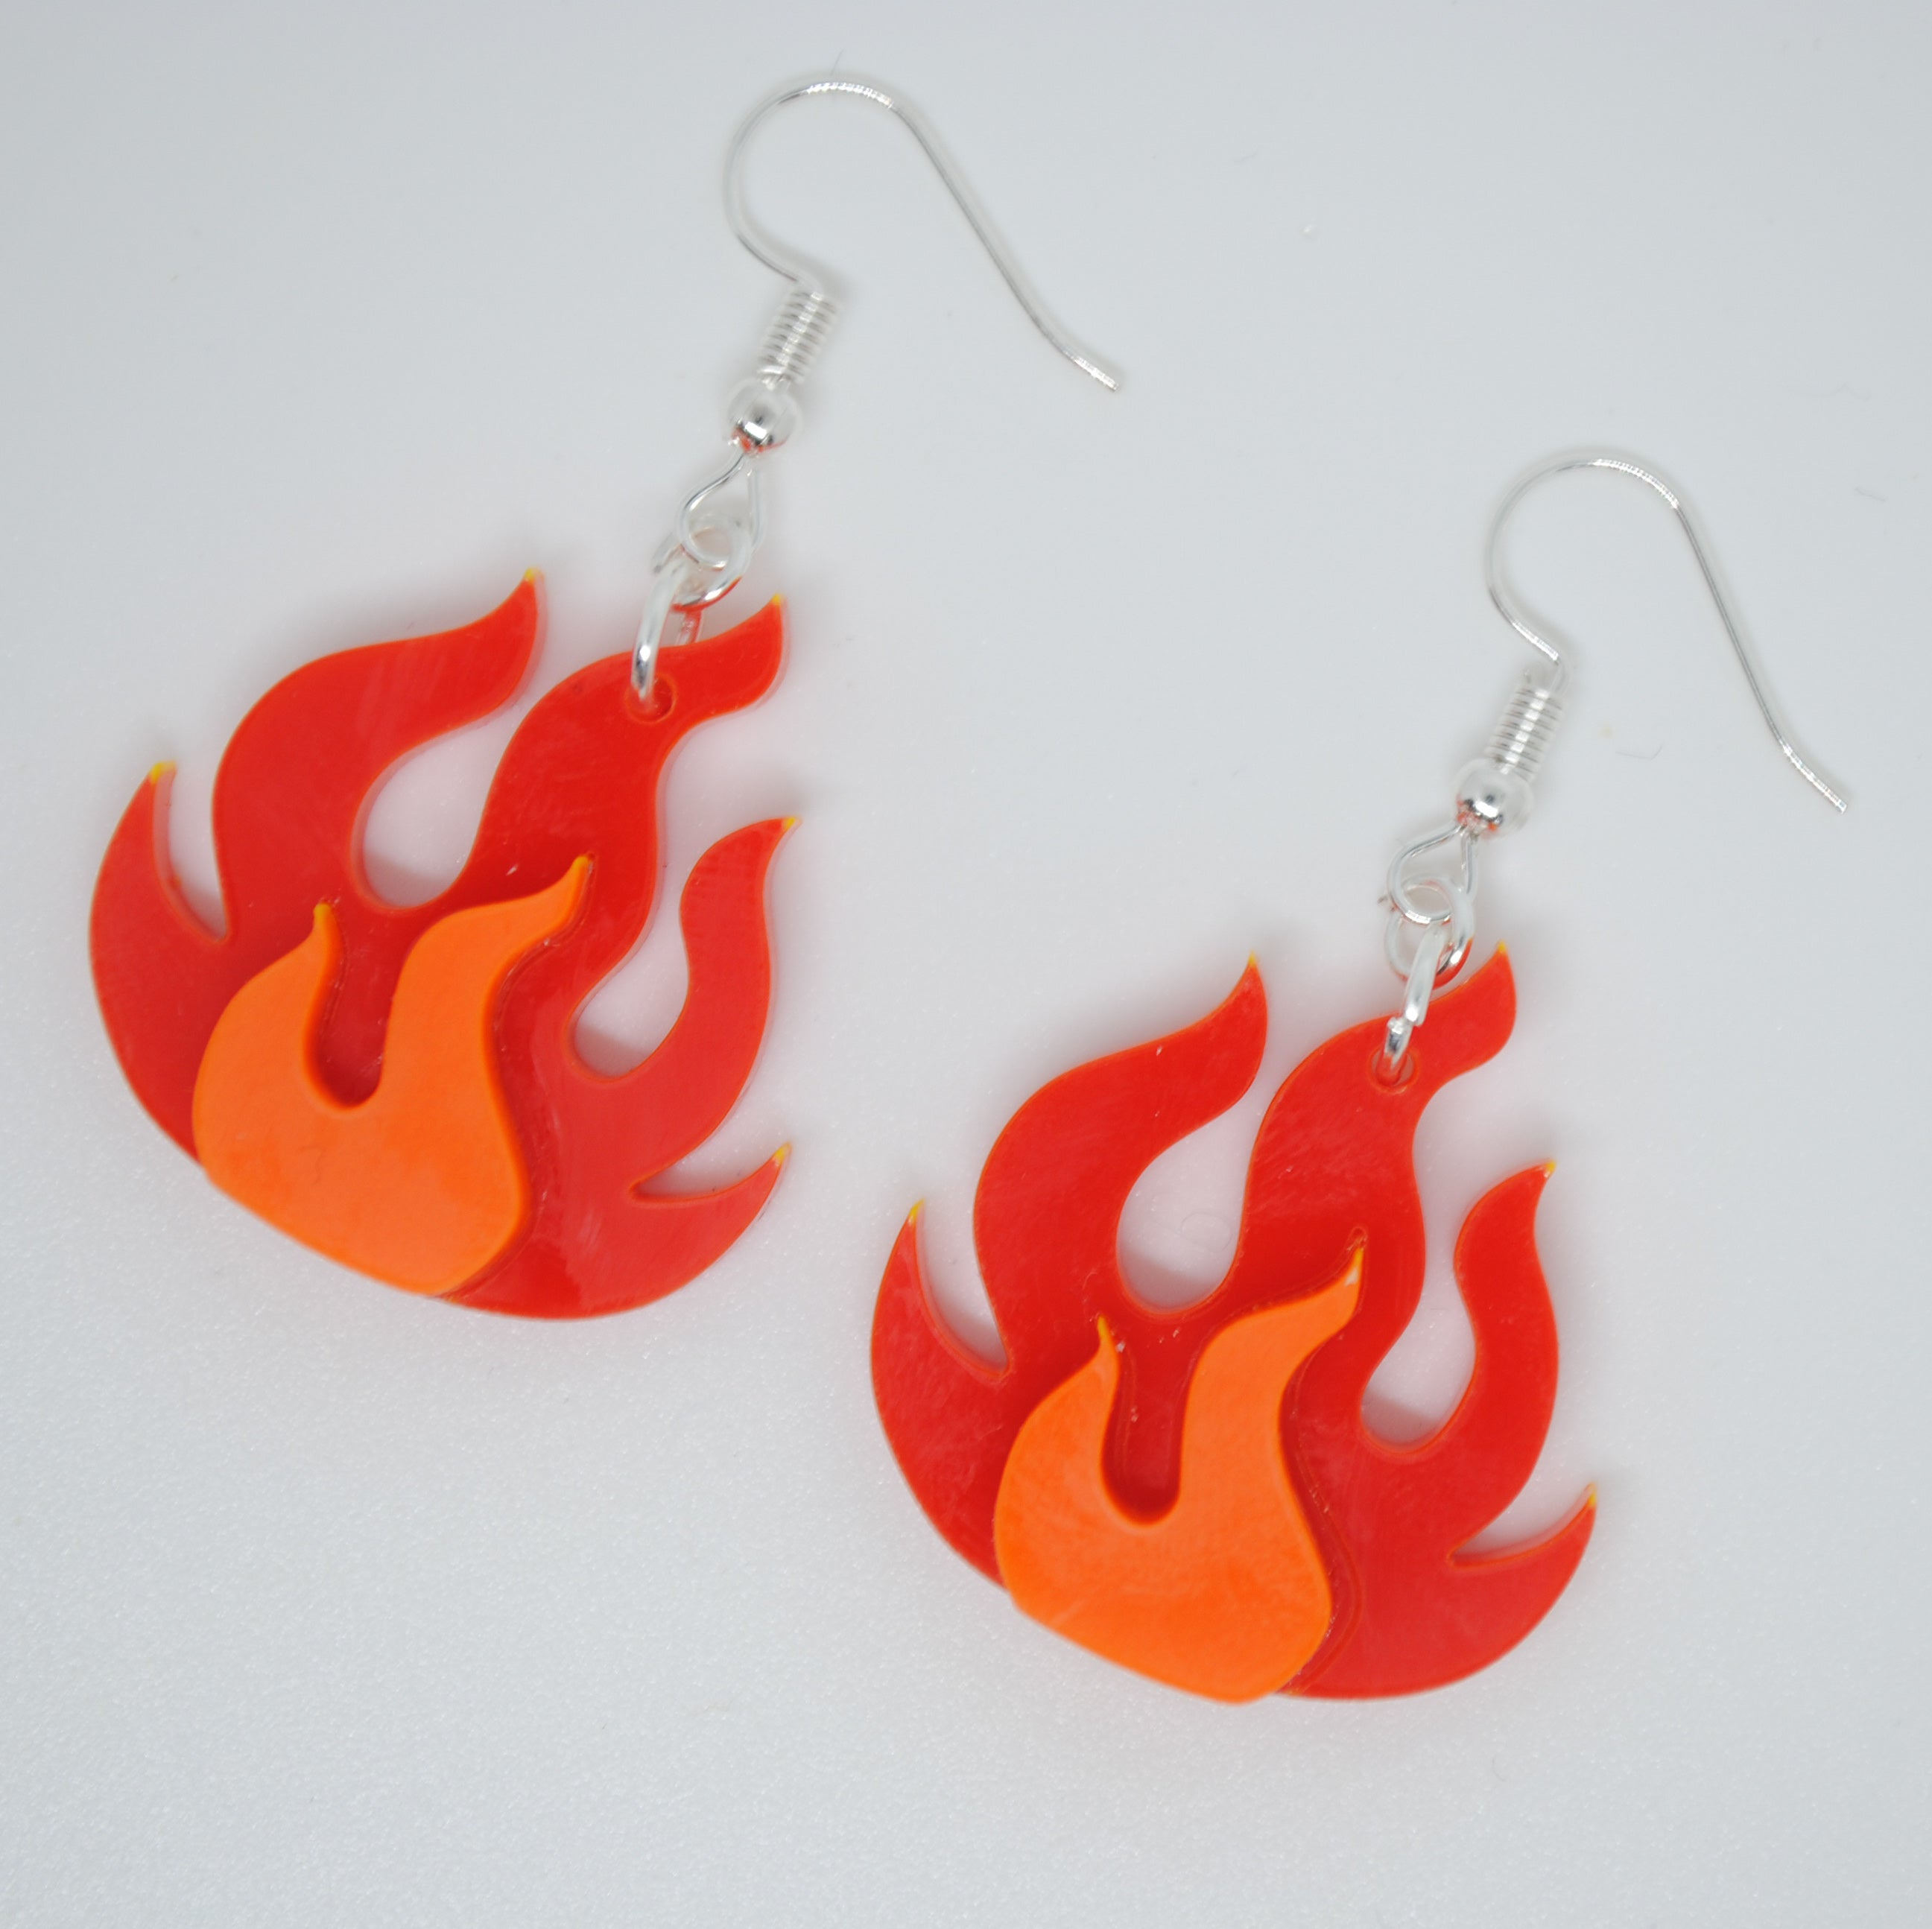 Flame Hook Earrings - Available in Opaque and Neon